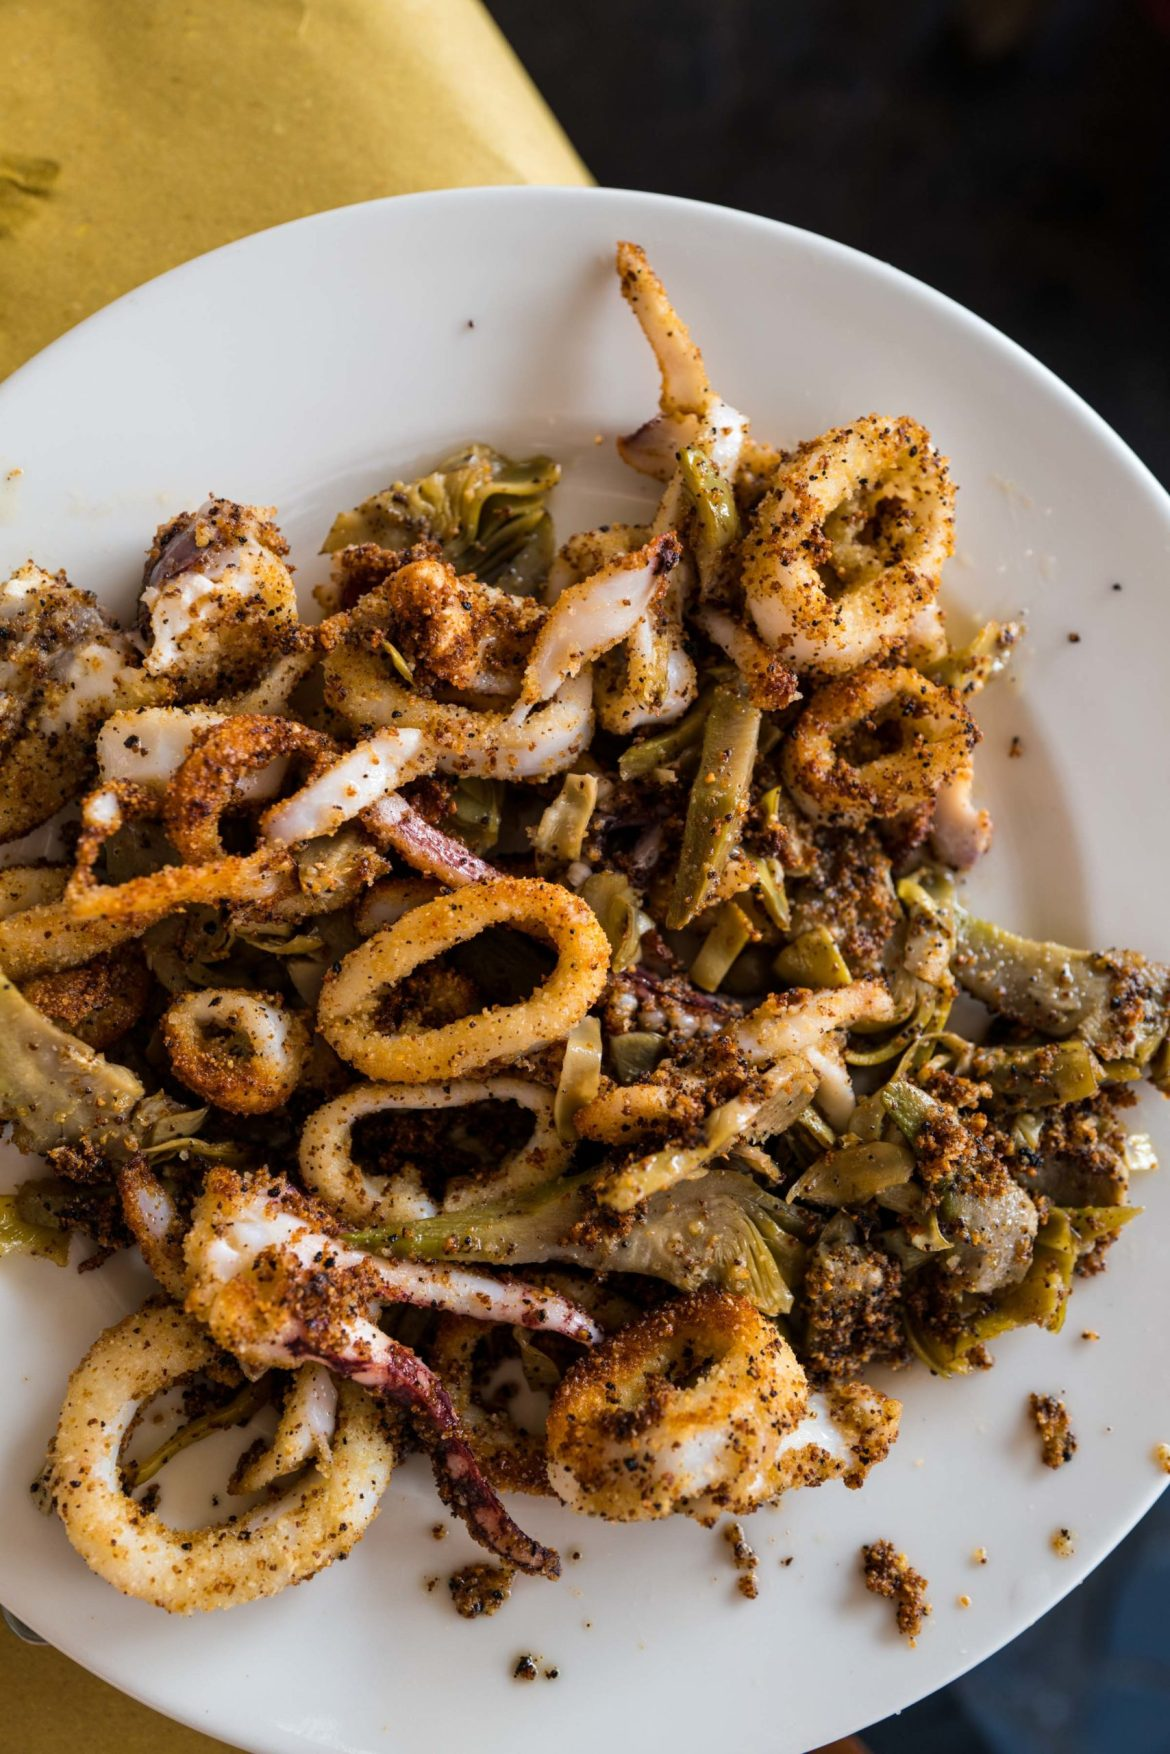 One of the most well known dishes from this Roman restaurant. Do not miss the artichokes and calamari with breadcrumbs at Trattoria da Teo in Rome, The Taste Edit #pasta #rome #italy #artichokes